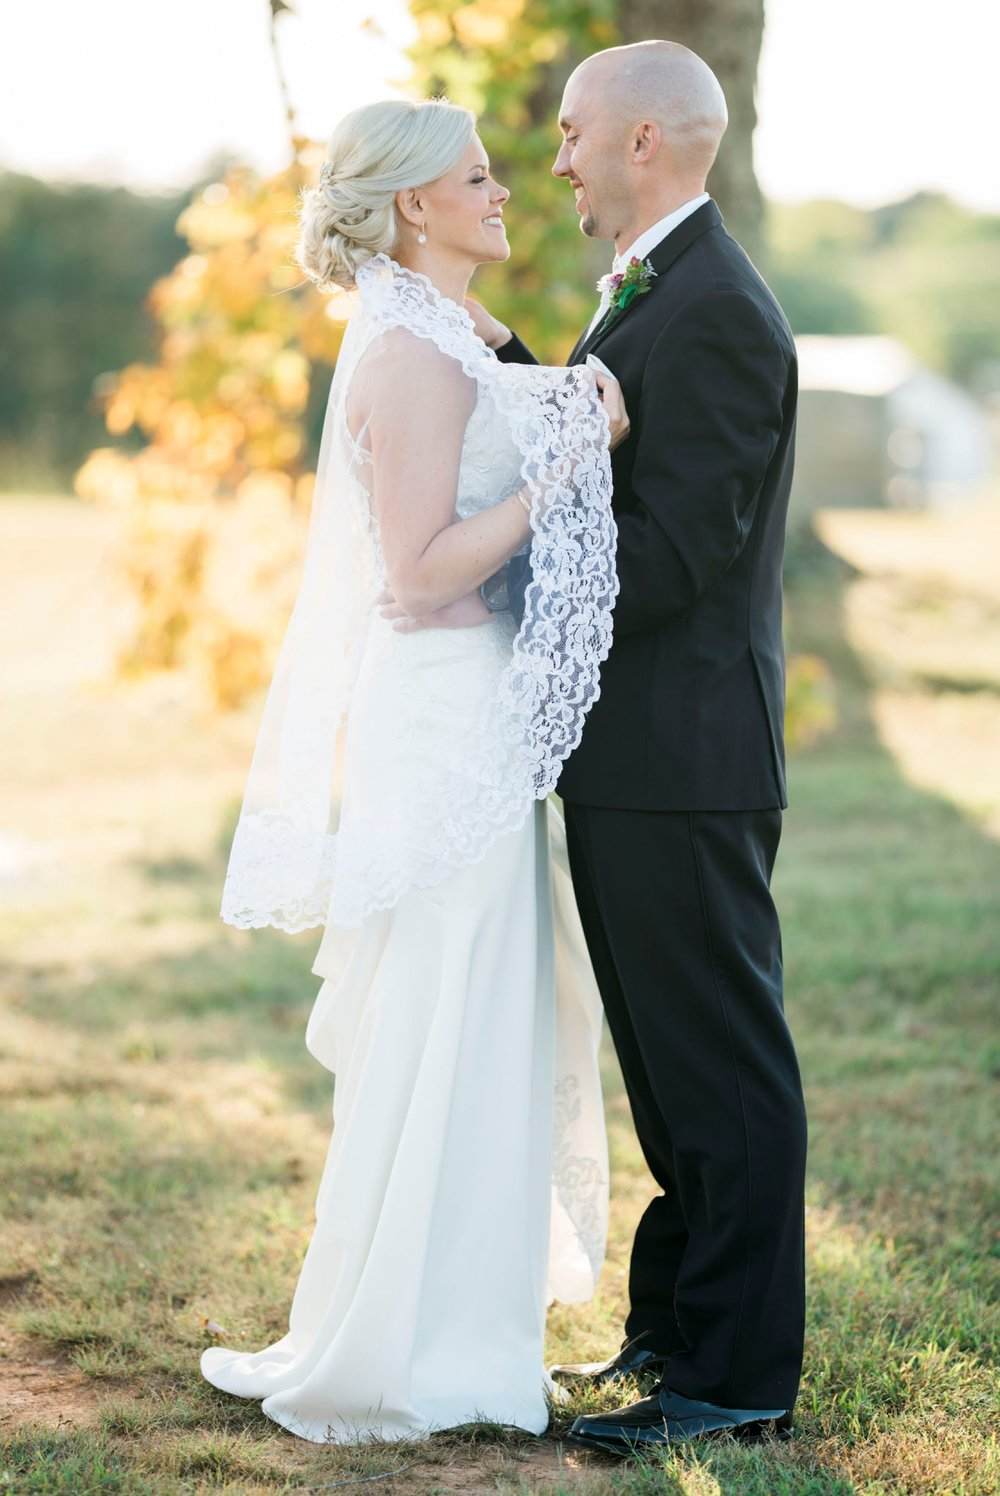 TheMillHouse_ChathamVA_WeddingPhotographer_VirginiaWeddingPhotographer_9.jpg 98.jpg